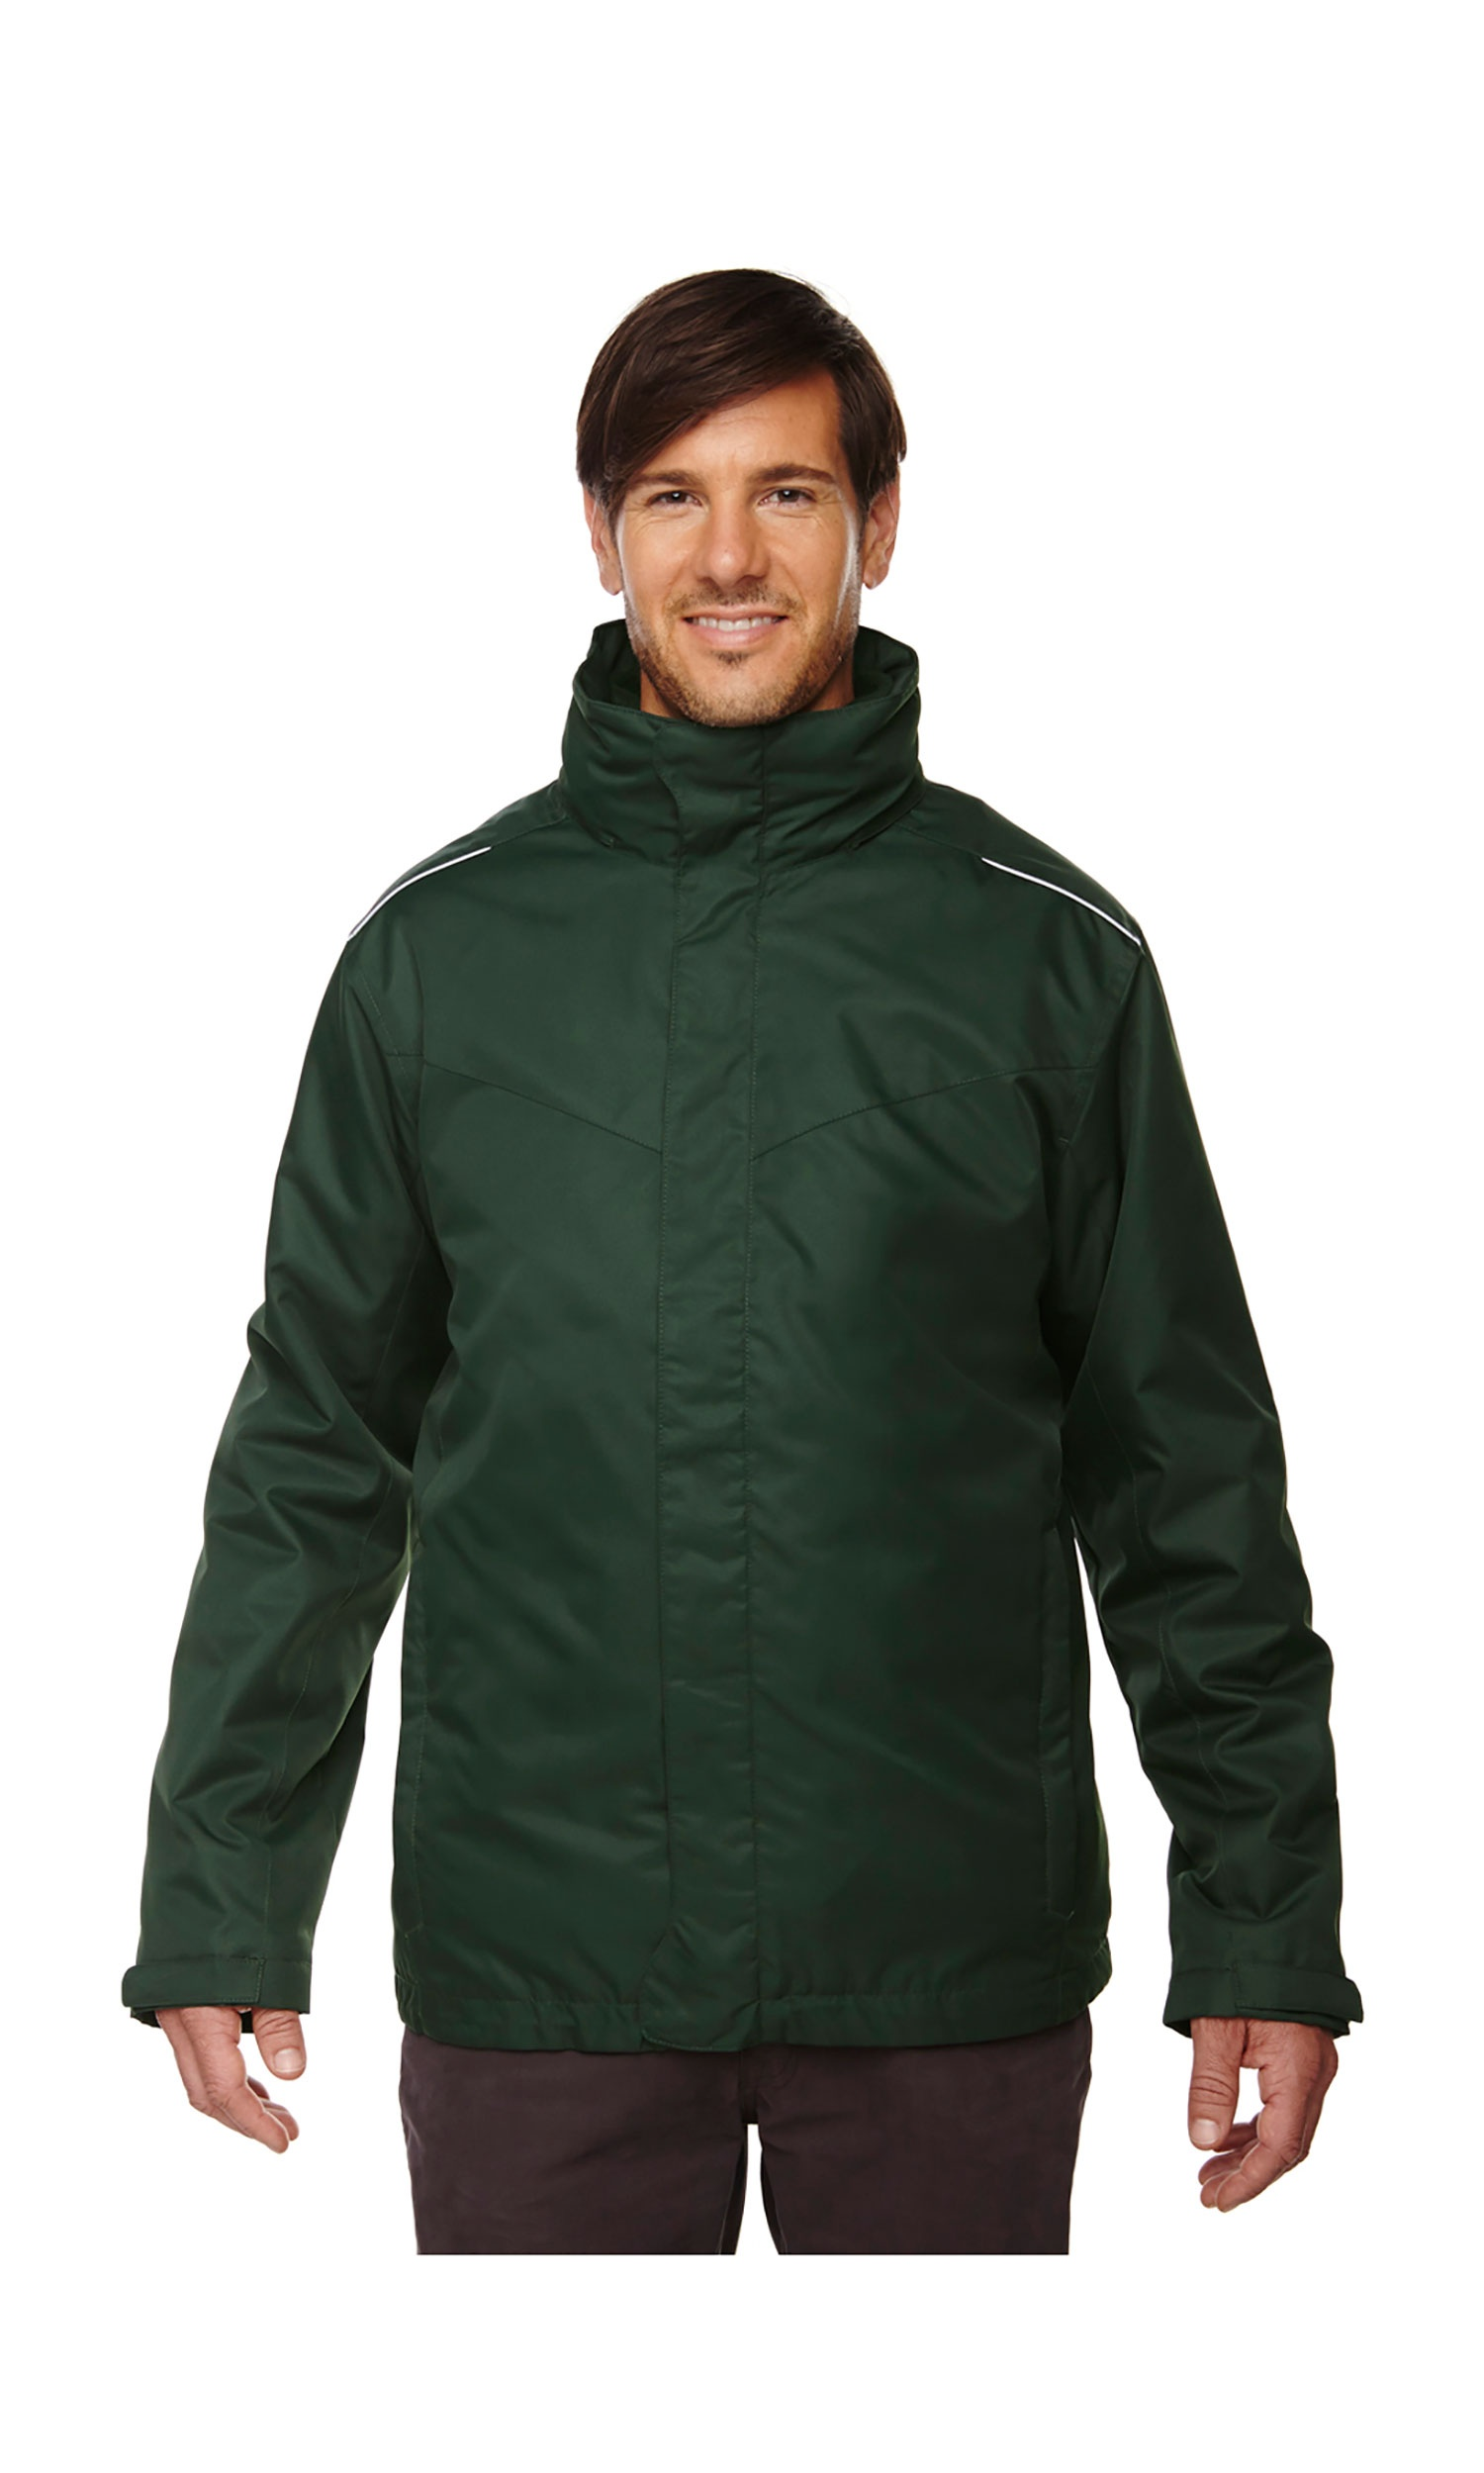 Ash City Core 365 Region Mens 3-in-1 Jacket with Fleece Liner